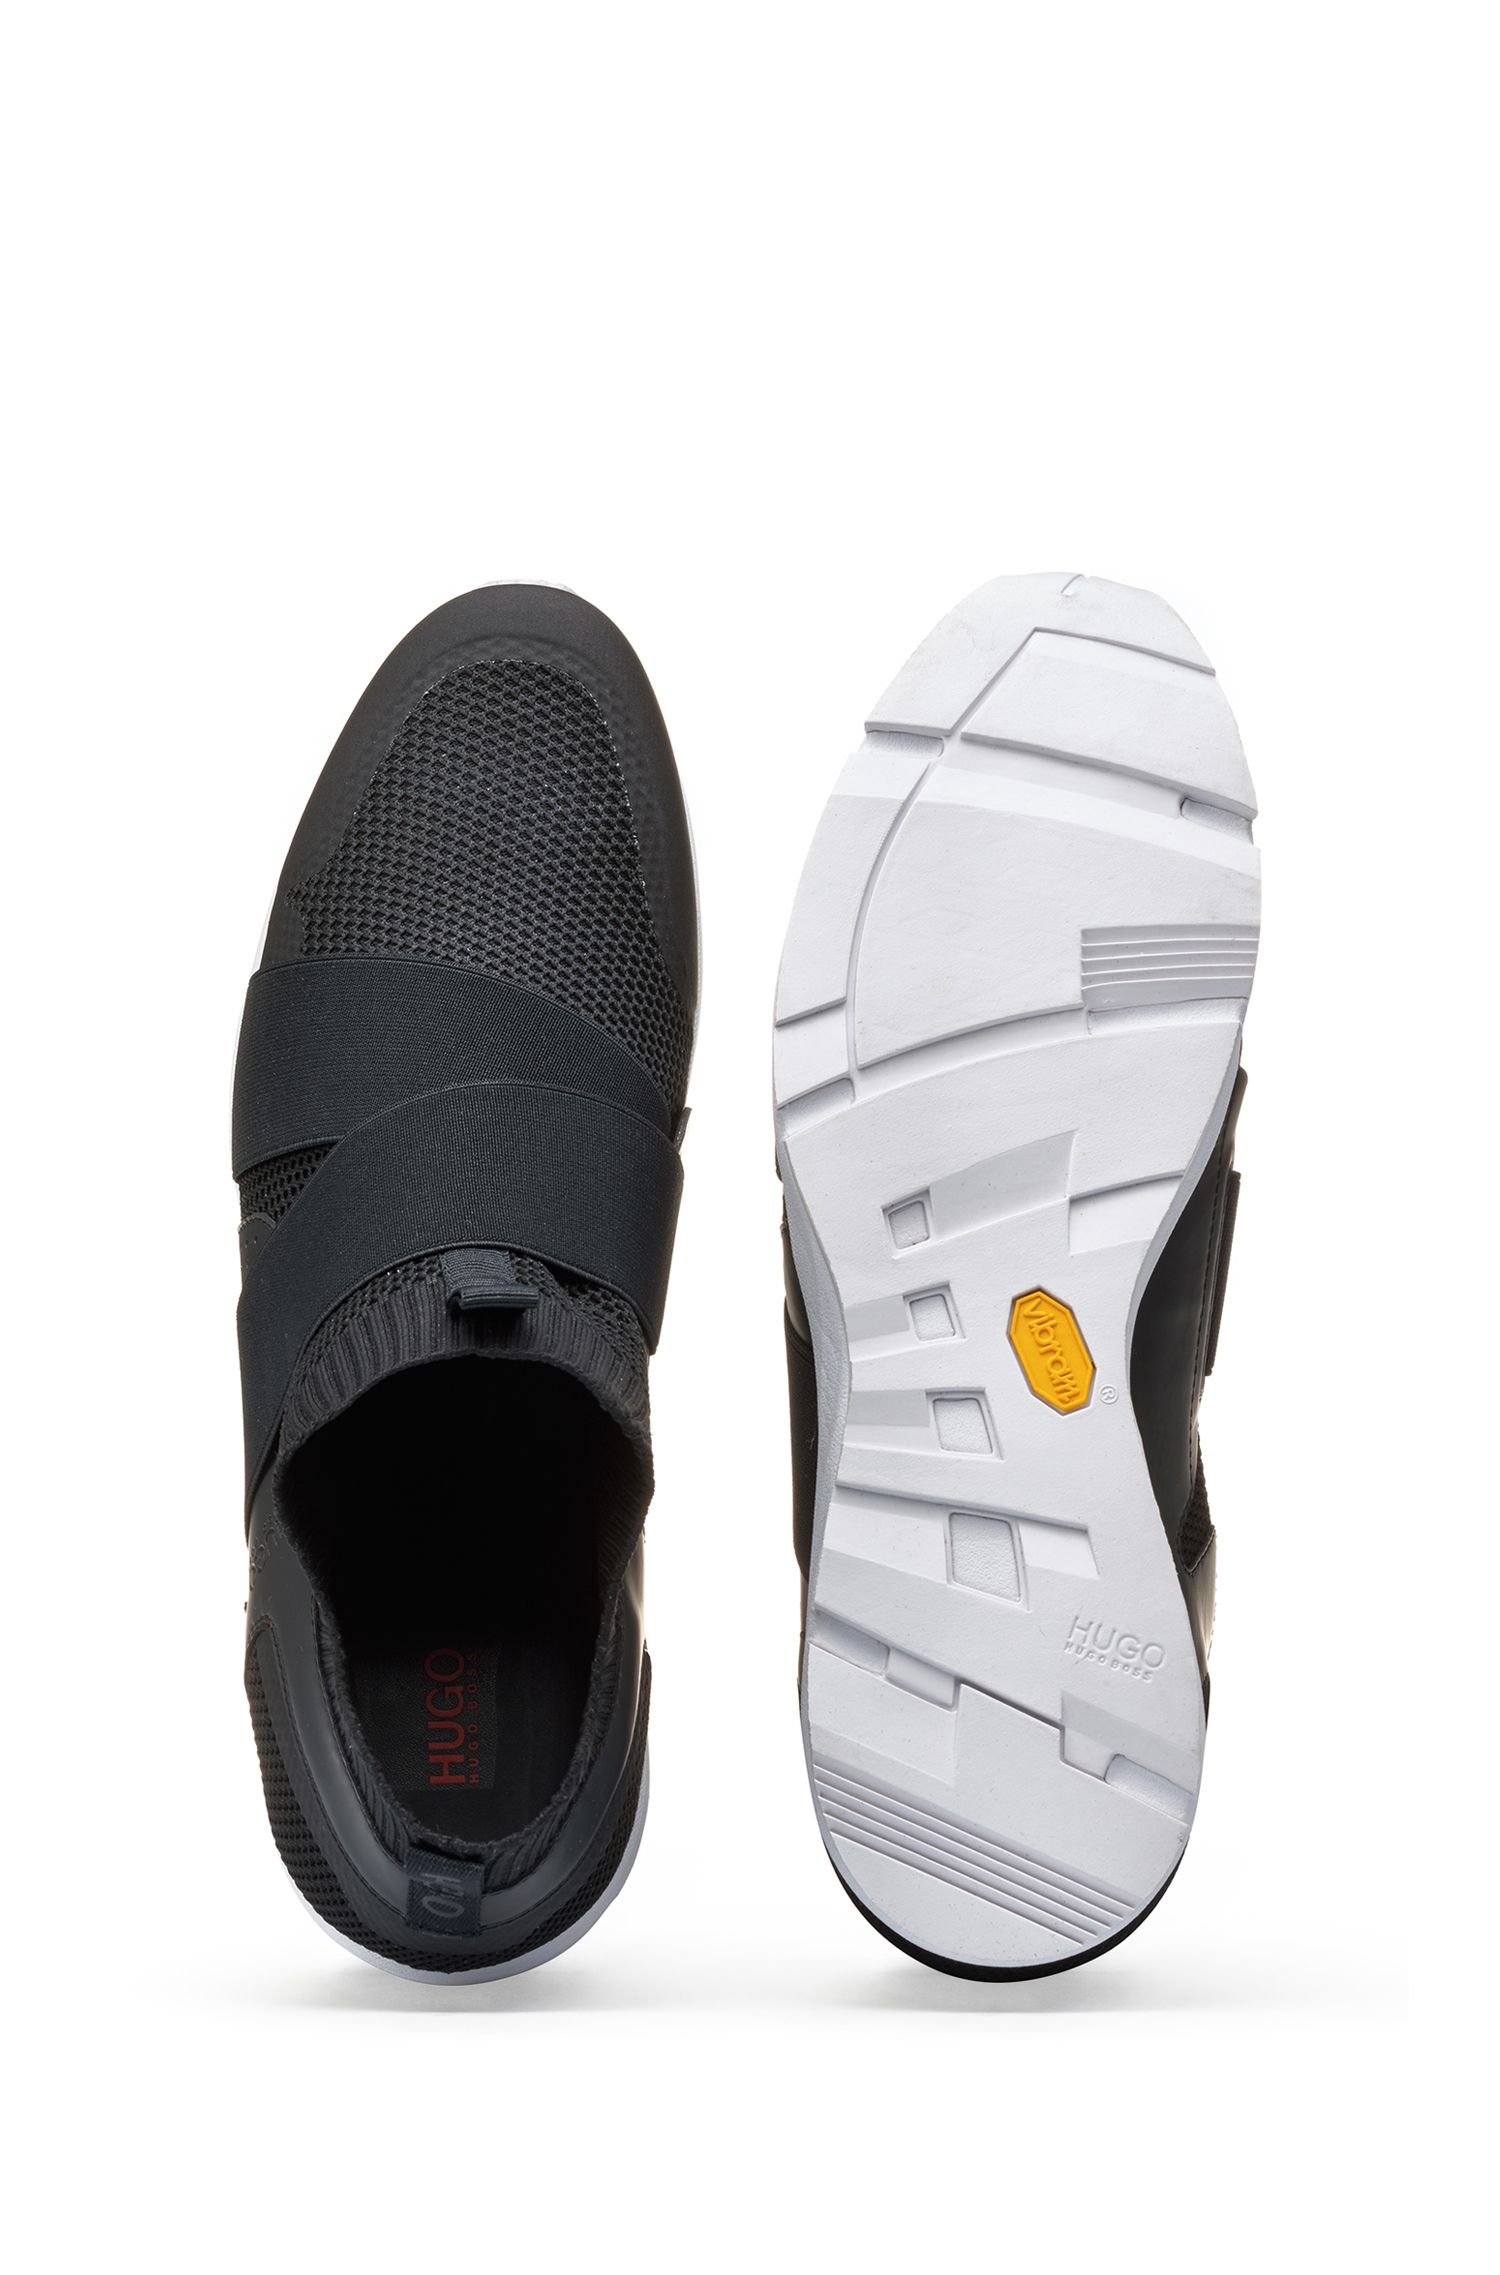 Slip-on hybrid sneakers with Vibram sole, Black